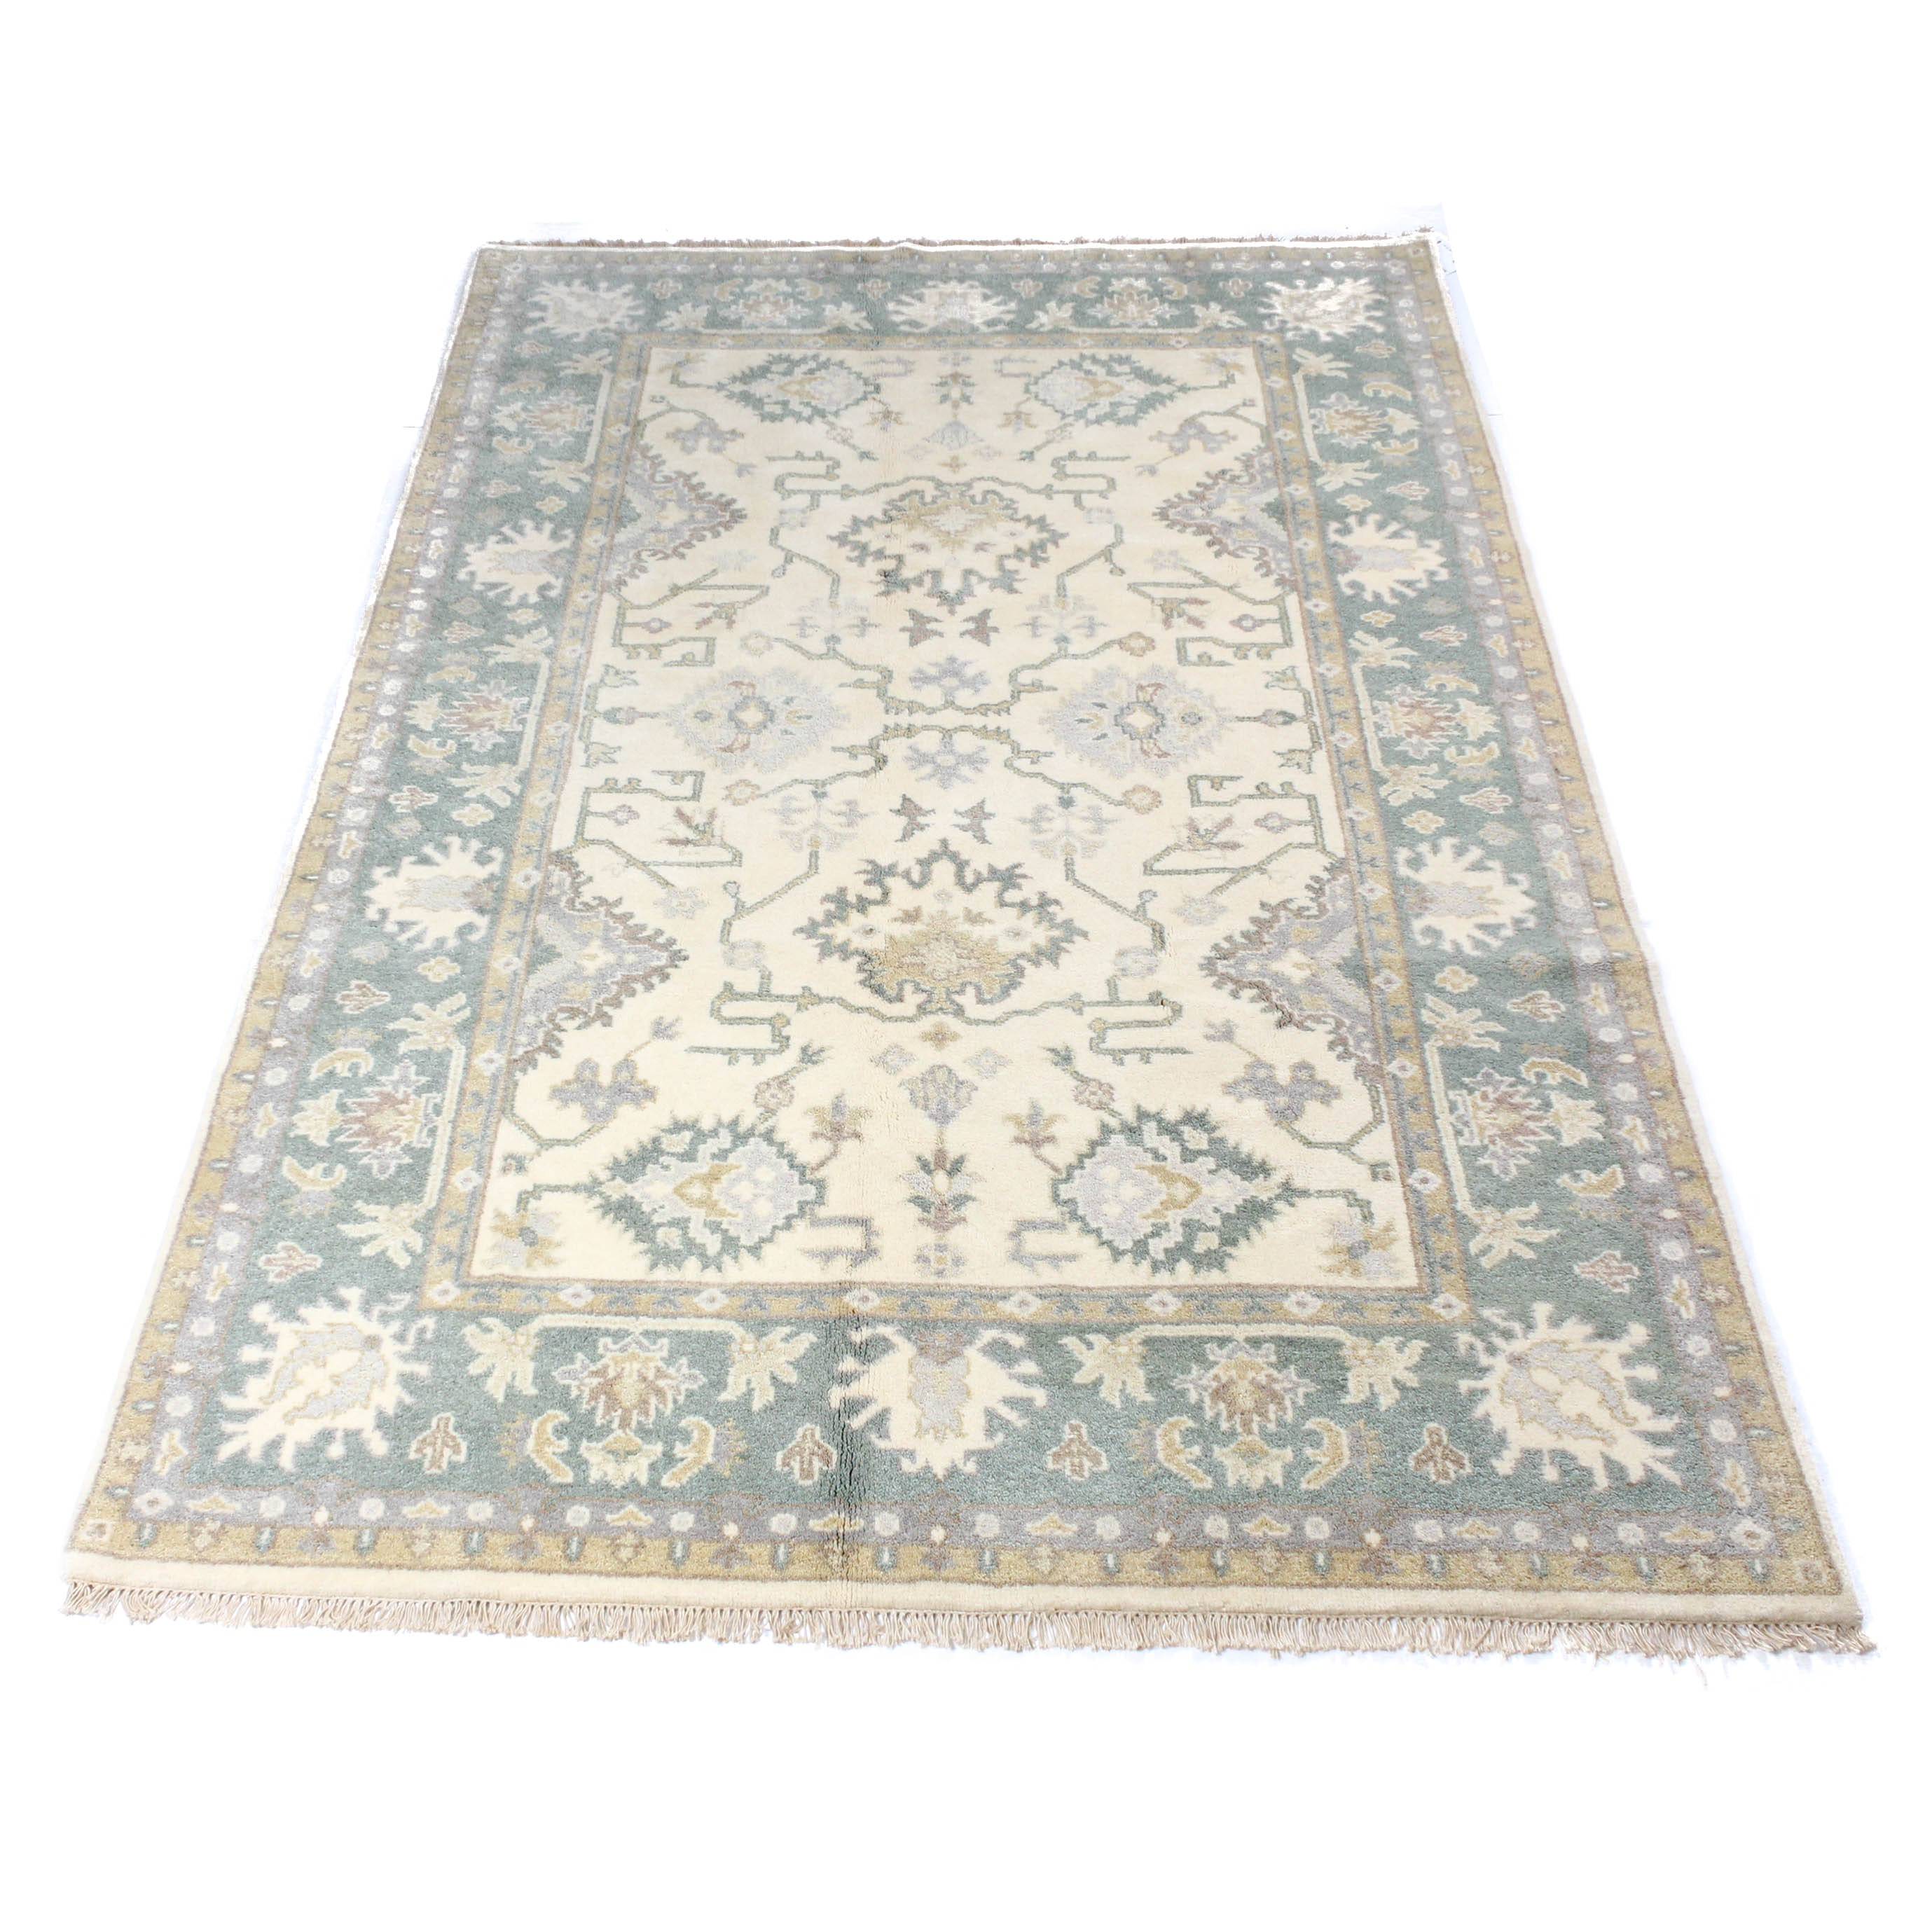 6'1 x 9'2 Finely Hand-Knotted Indo-Turkish Oushak Rug